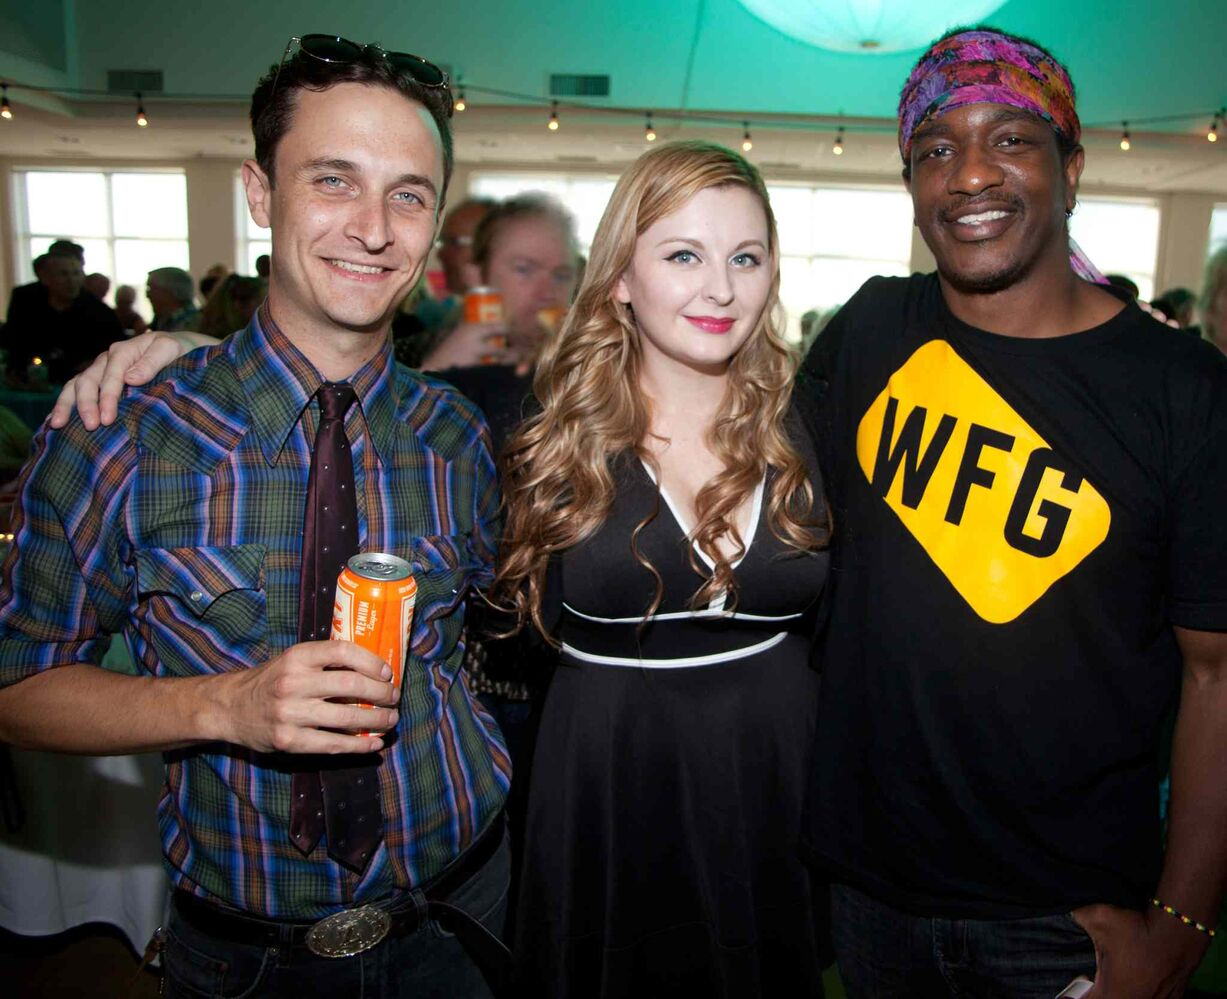 An opening reception for the 15th annual Gimli Film Festival was held Wednesday, July 22, 2015 at the Waterfront Centre. Pictured, from left, are Aaron Zeghers, Alex Kristiansen and Ben Williams.  (JOHN JOHNSTON FOR THE WINNIPEG FREE PRESS)